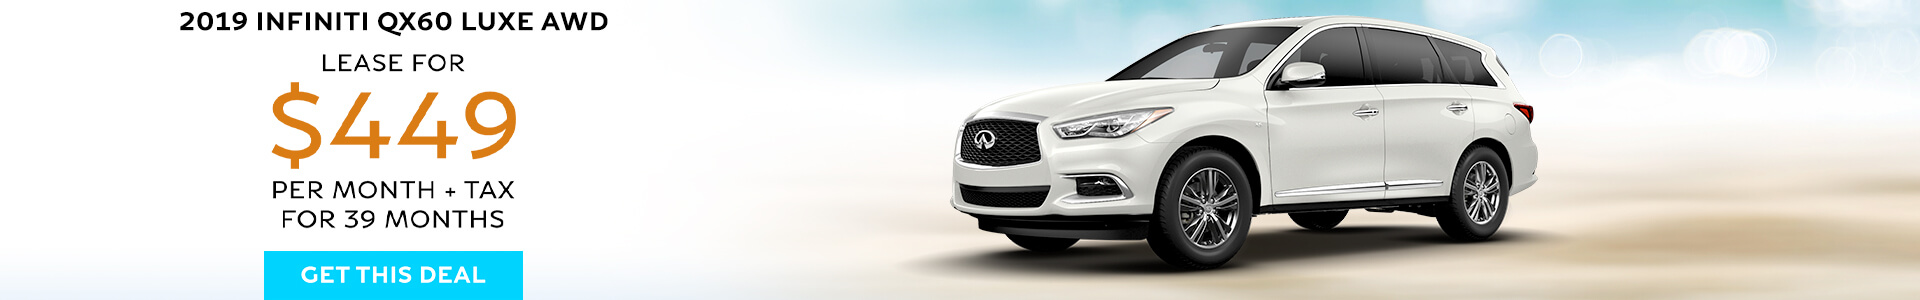 QX60 - Lease for $449